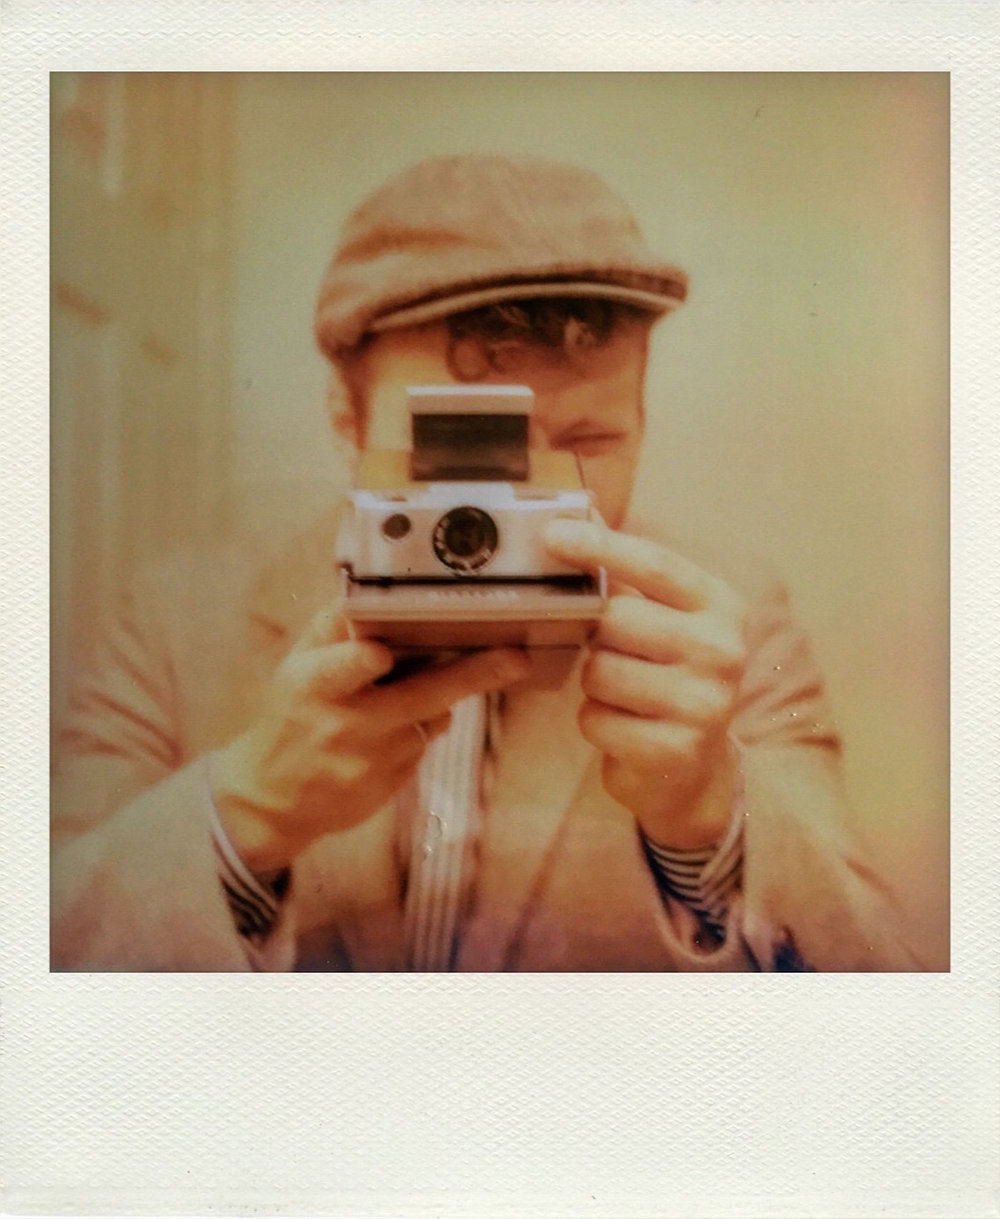 Mirror-selfie with my Polaroid SX-70 and Impossible Project film.